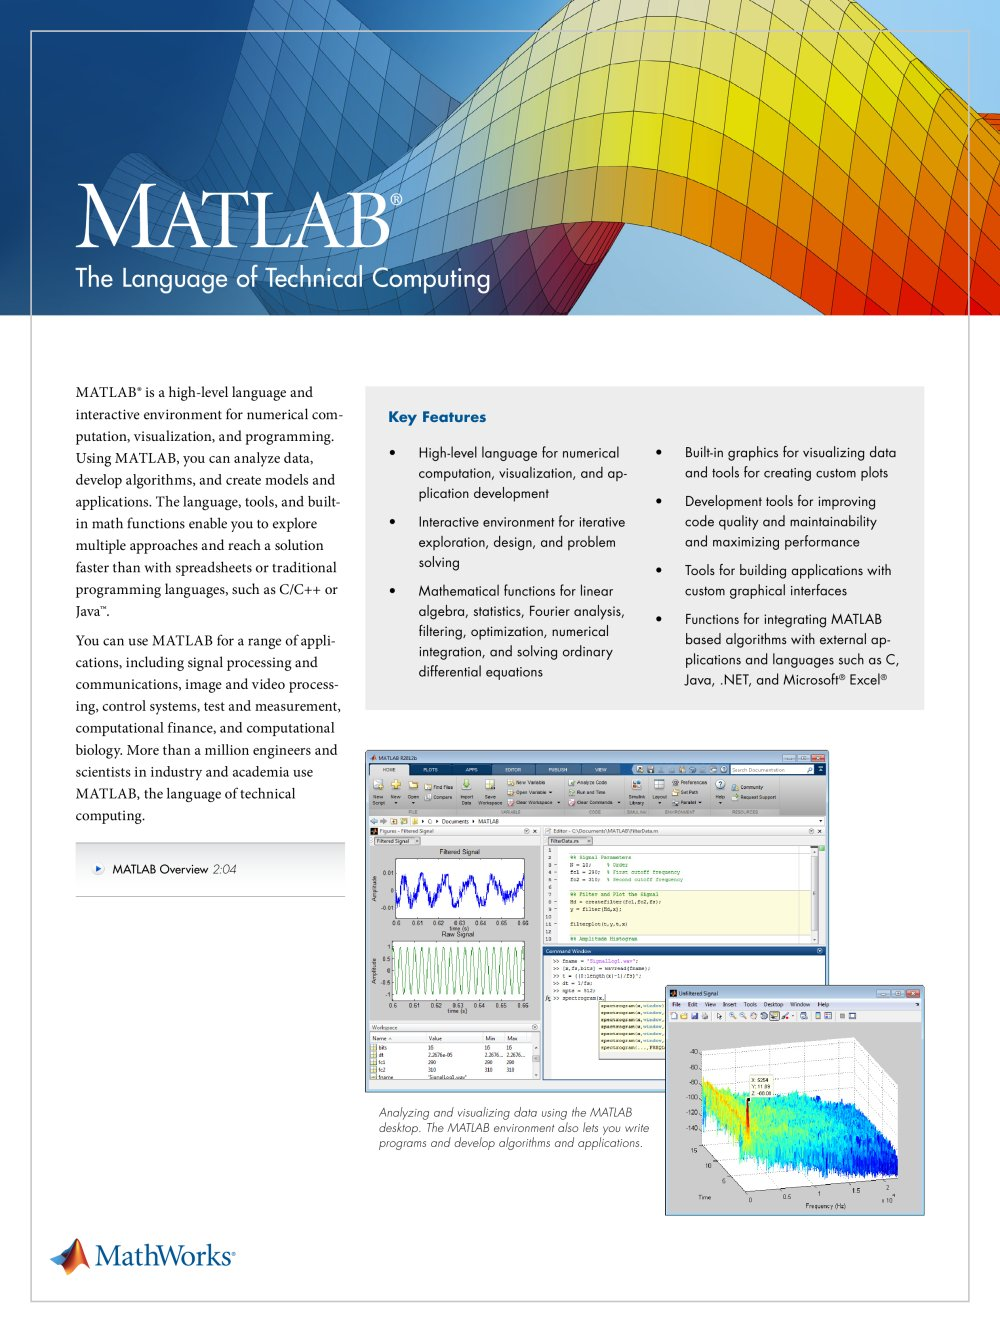 Plot Pdf Matlab From Data - yuseven